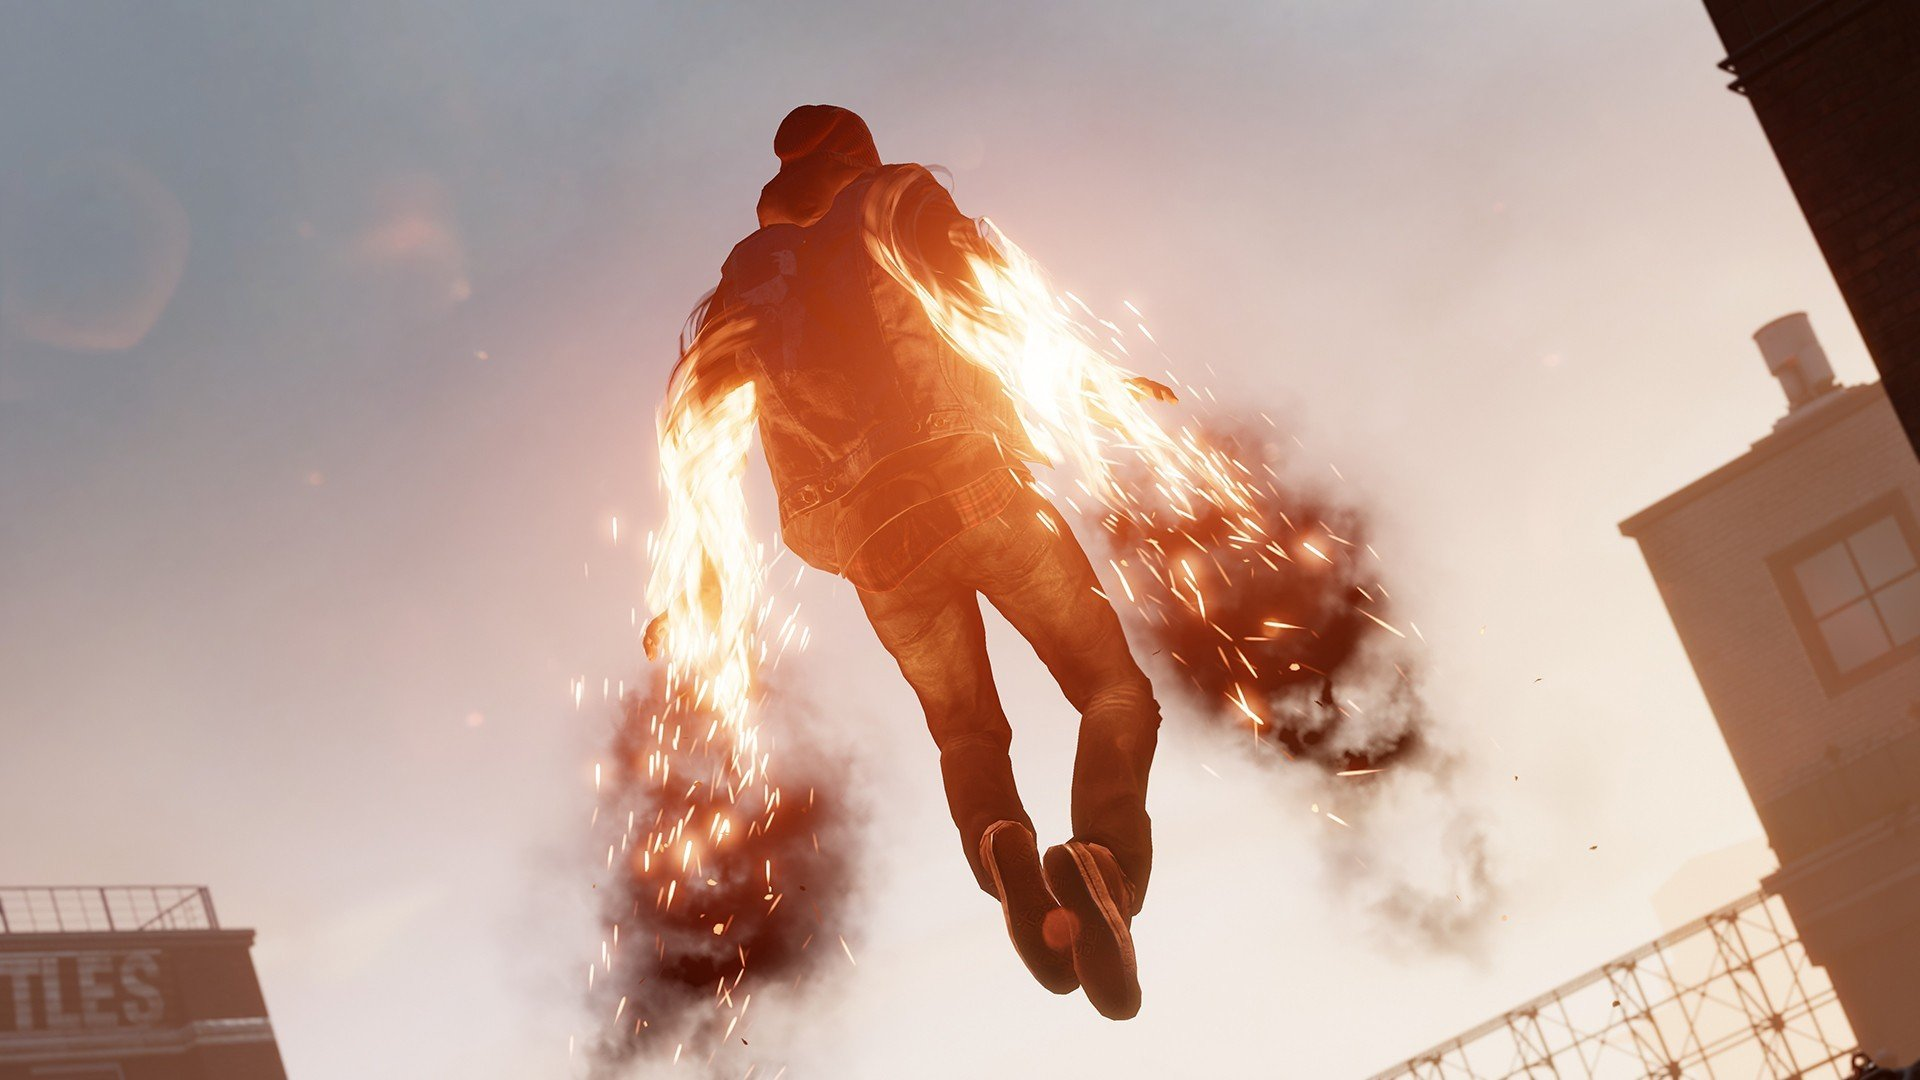 Pc Gaming Infamous Second Son Hd Wallpapers Desktop And Mobile